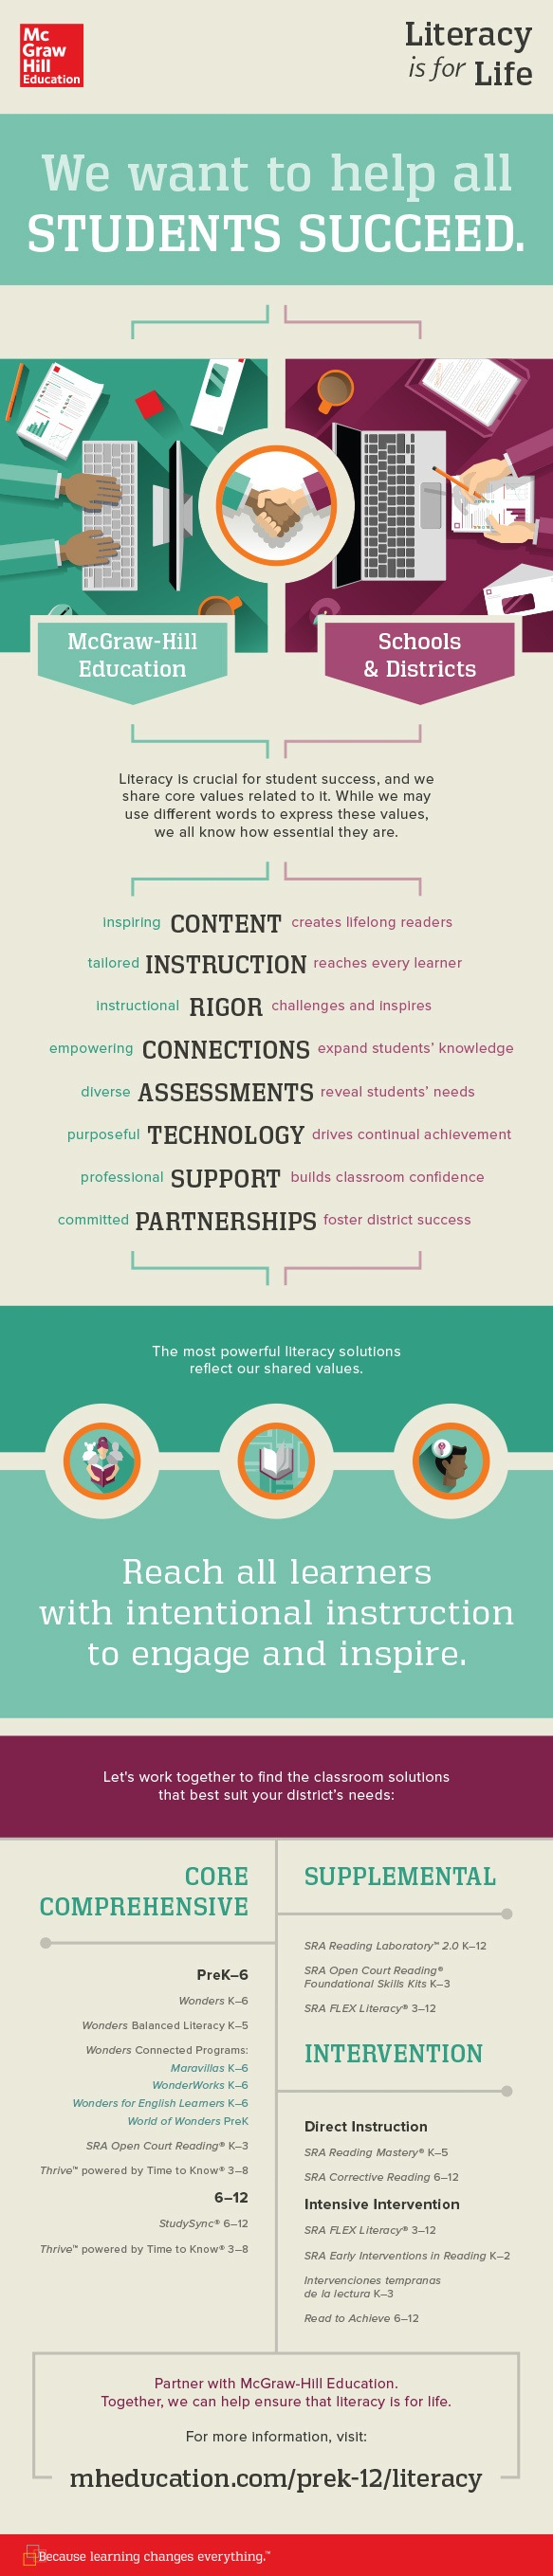 Literacy is for Life: Helping All Students Succeed Infographic